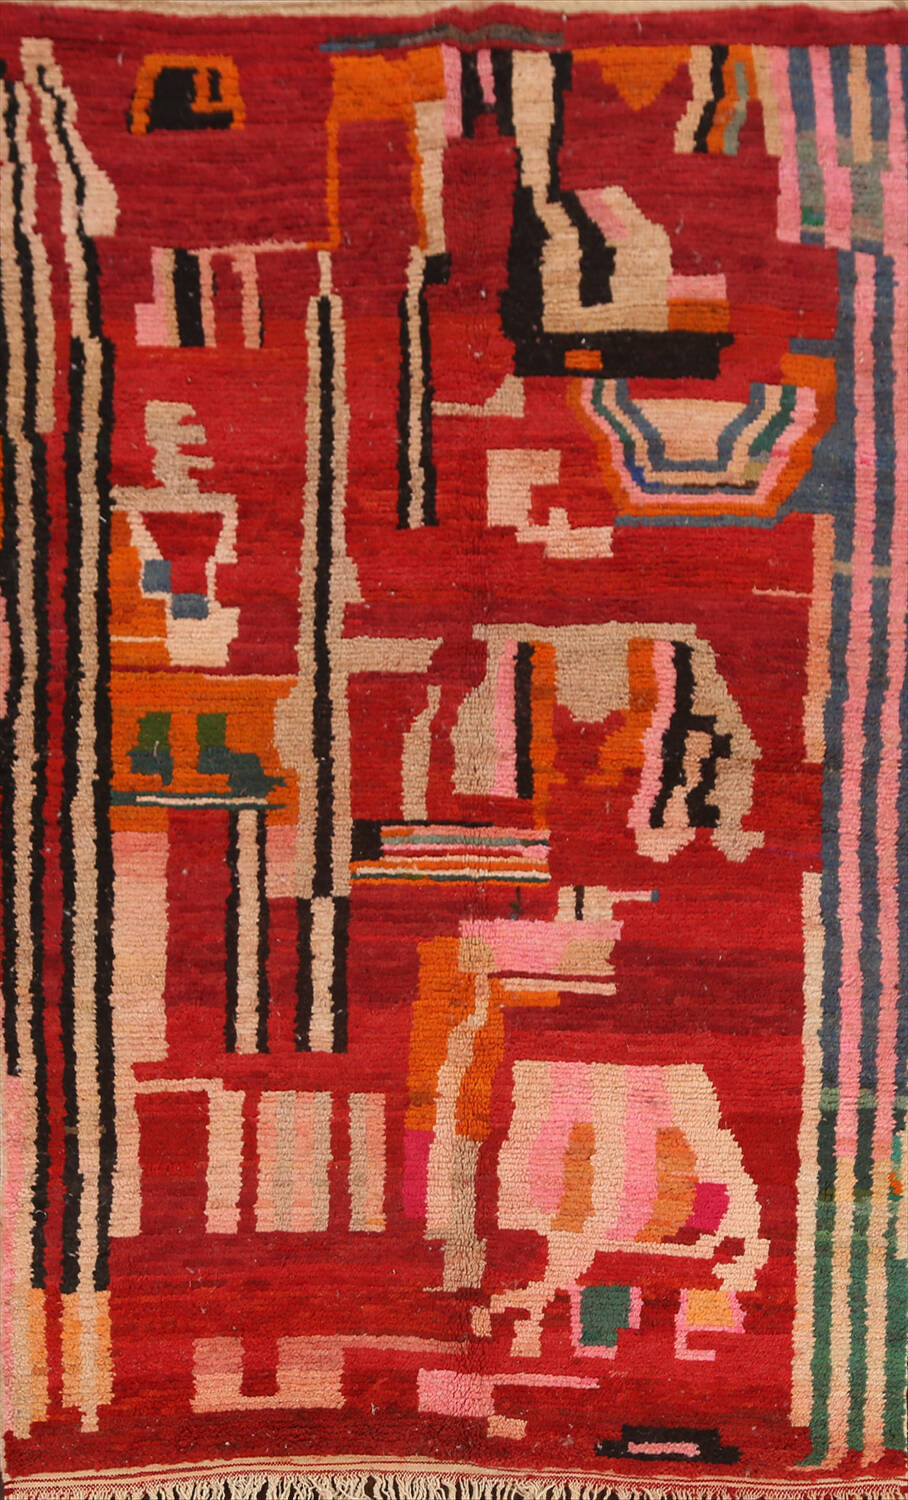 Abstract Modern Moroccan Oriental Area Rug 5x8 image 1